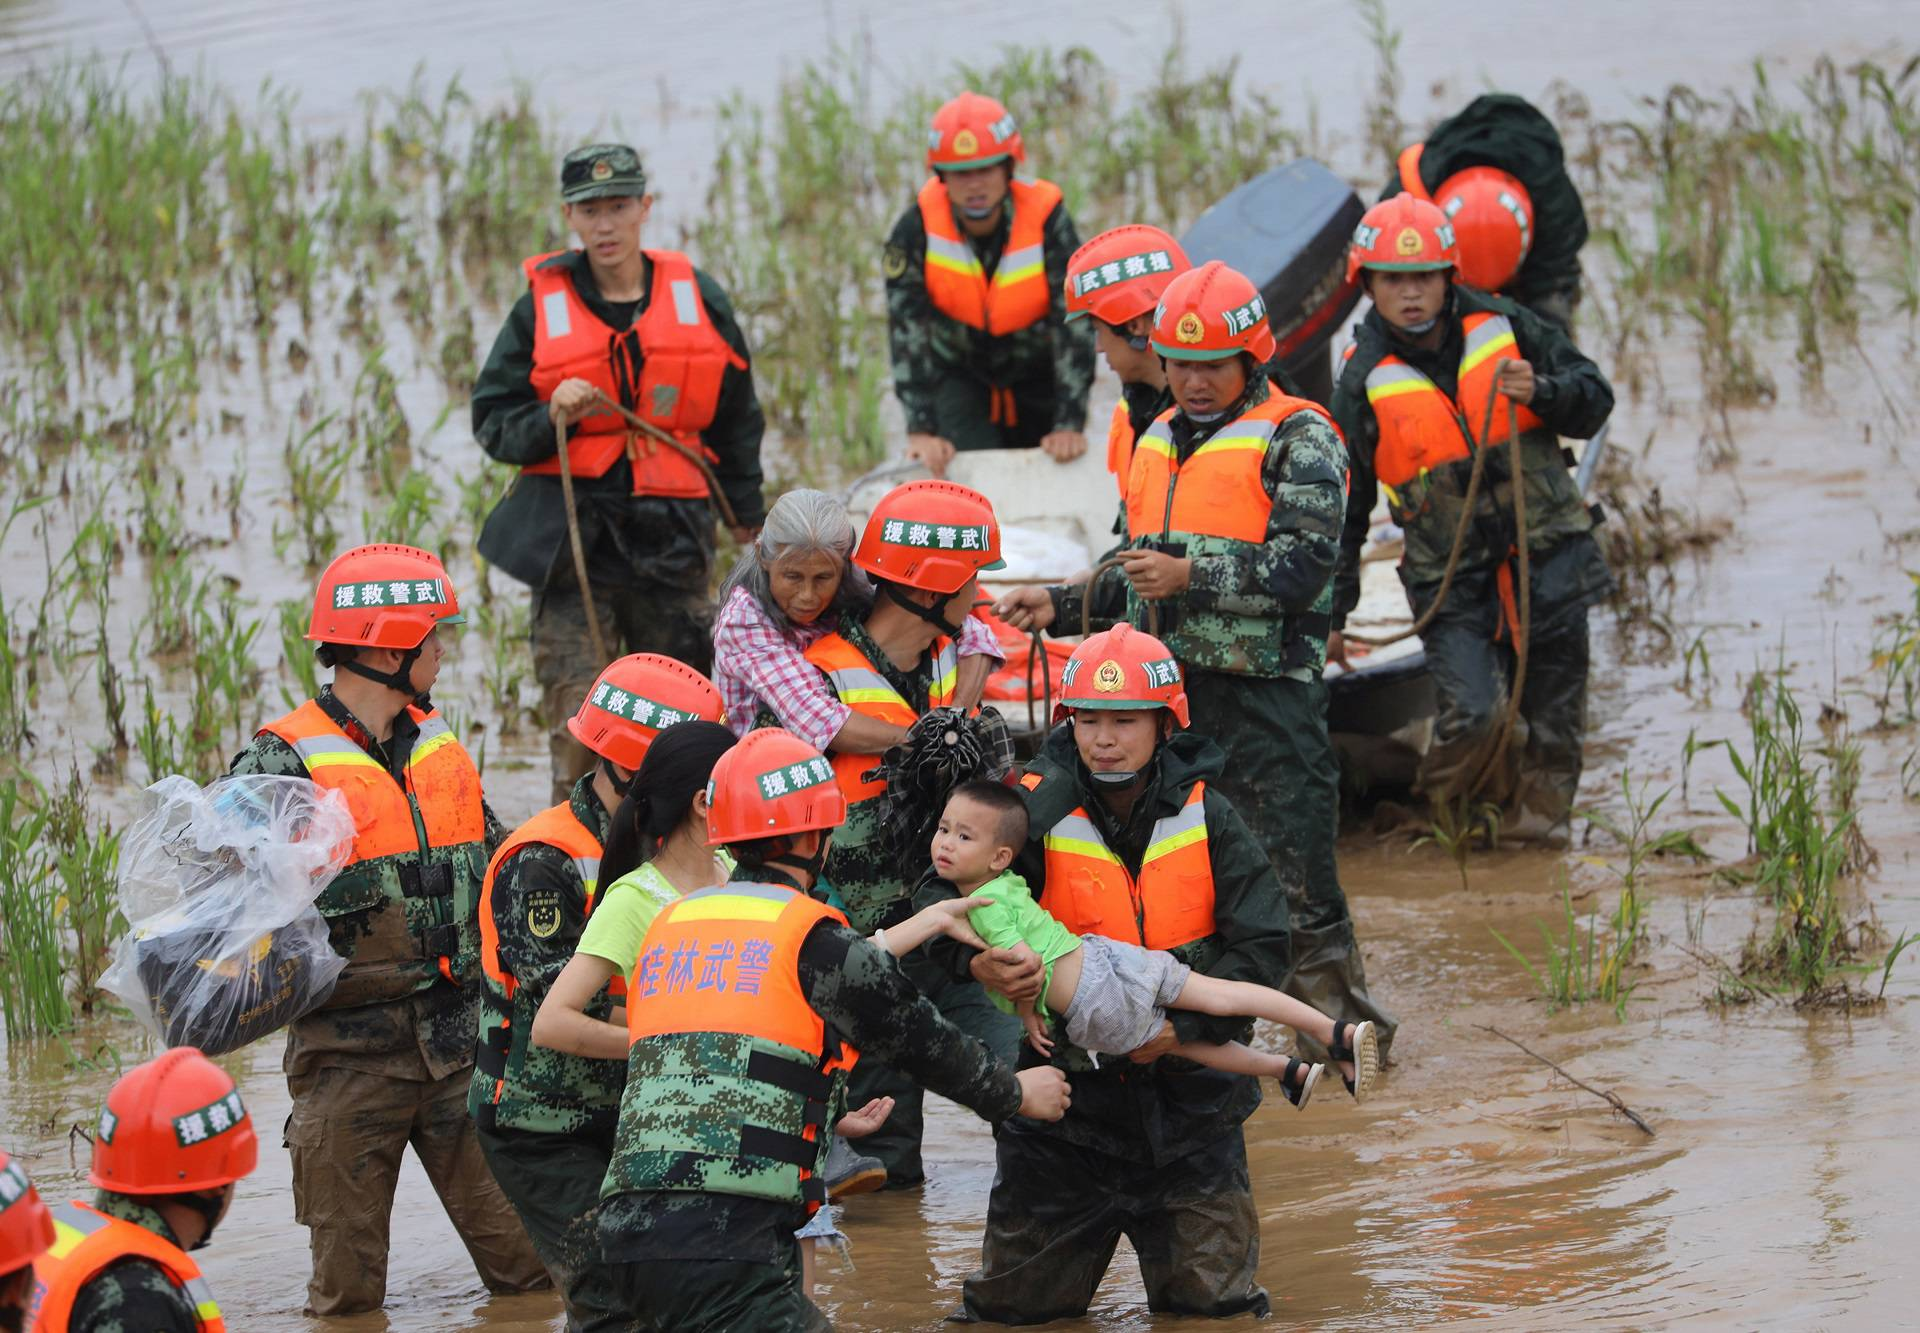 Paramilitary officers rescue stranded villagers at a flooded field in Quanzhou county, Guilin, Guangxi